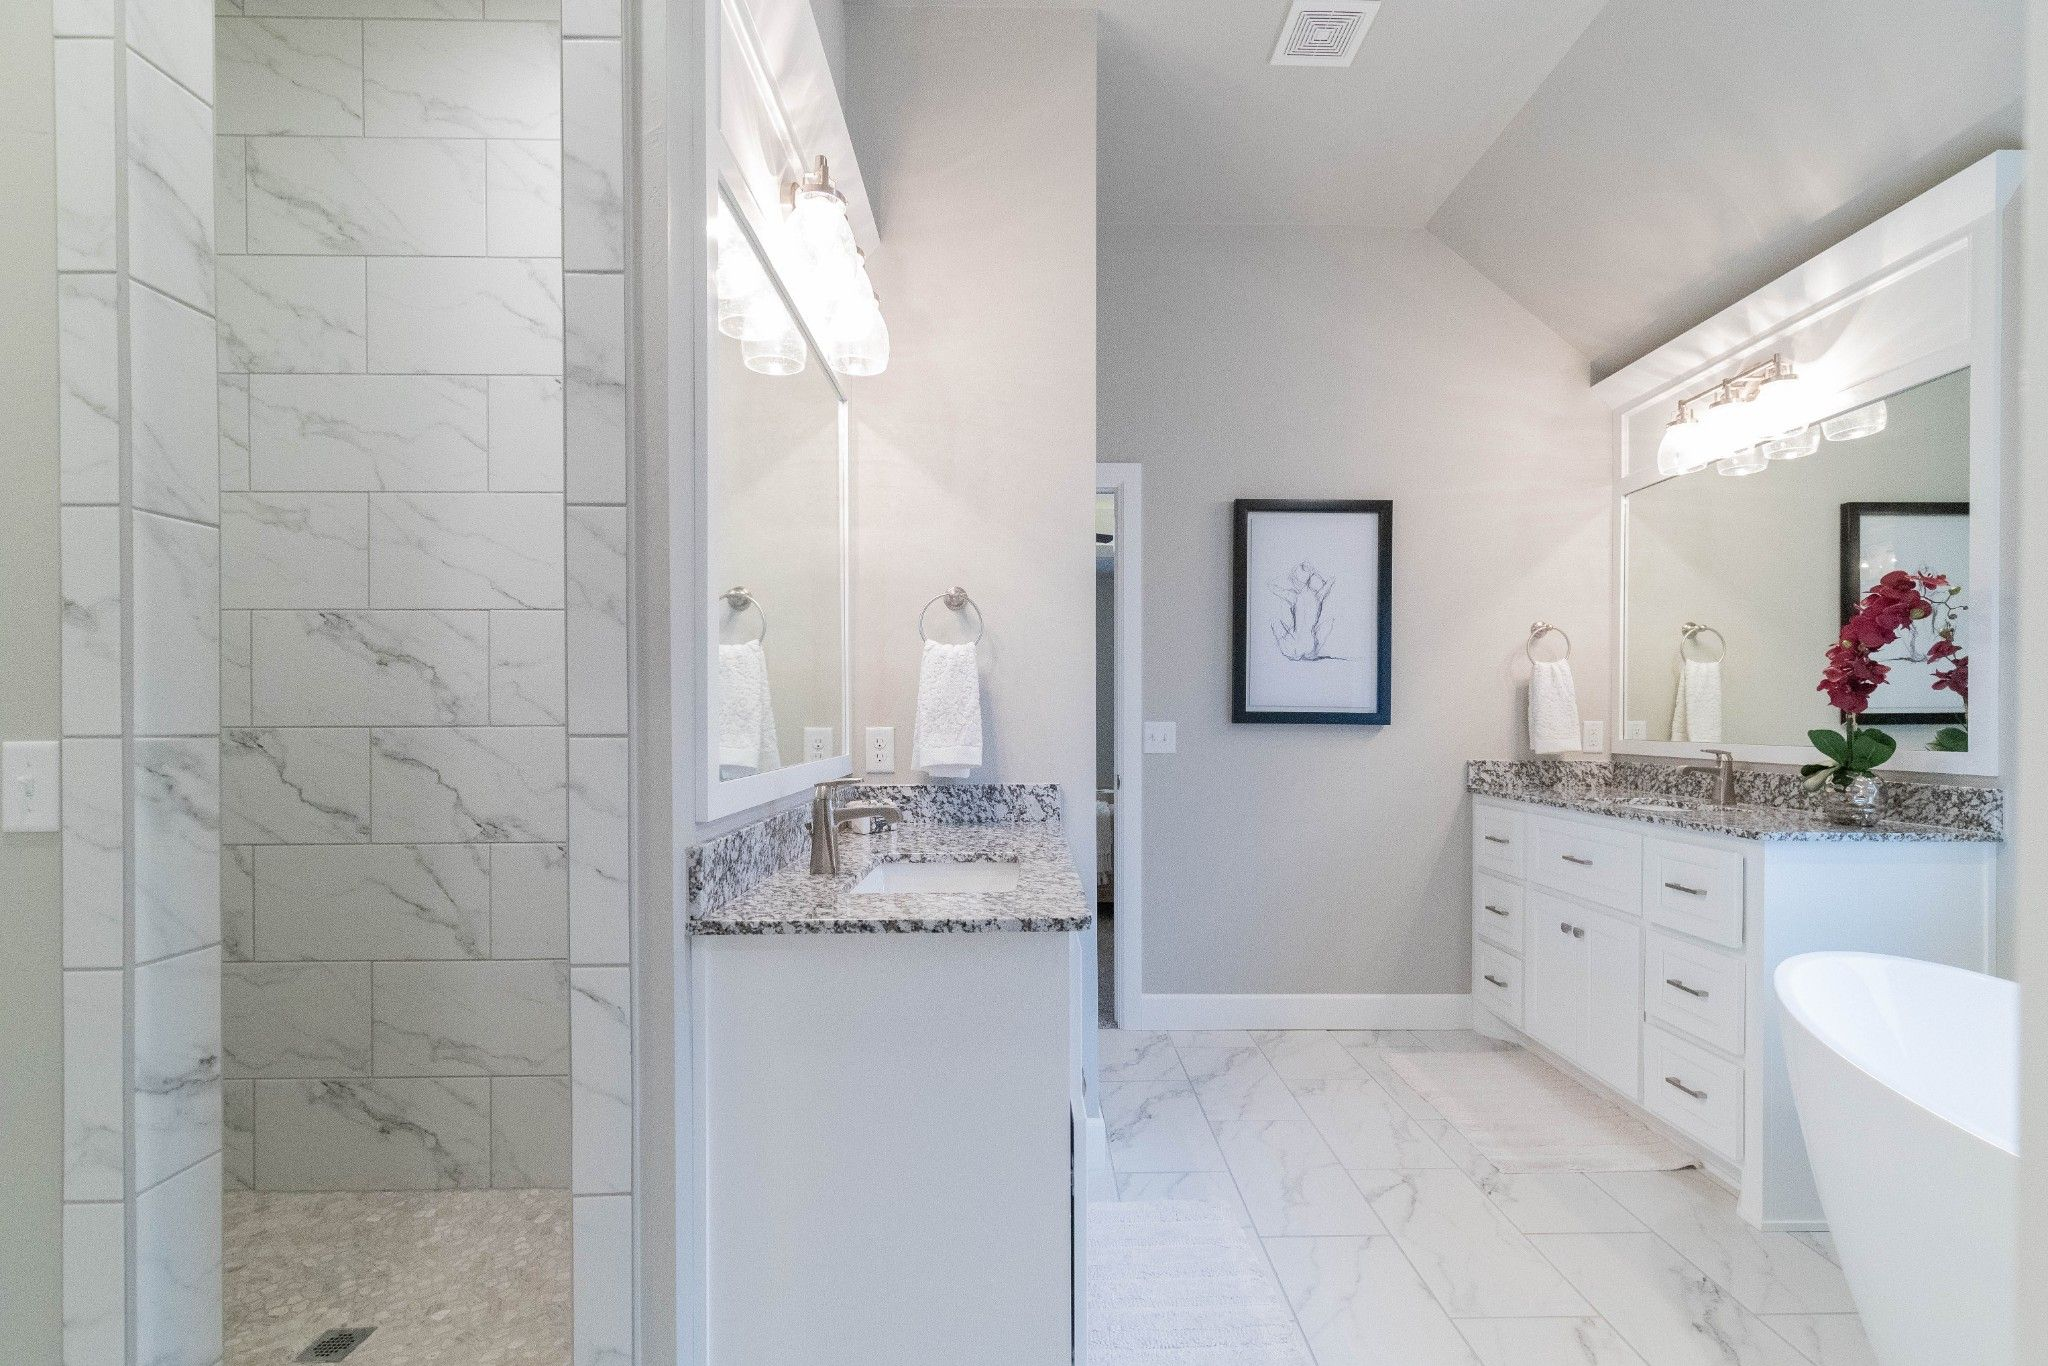 Bathroom featured in the Poppey Bonus Room By Homes By Taber in Oklahoma City, OK